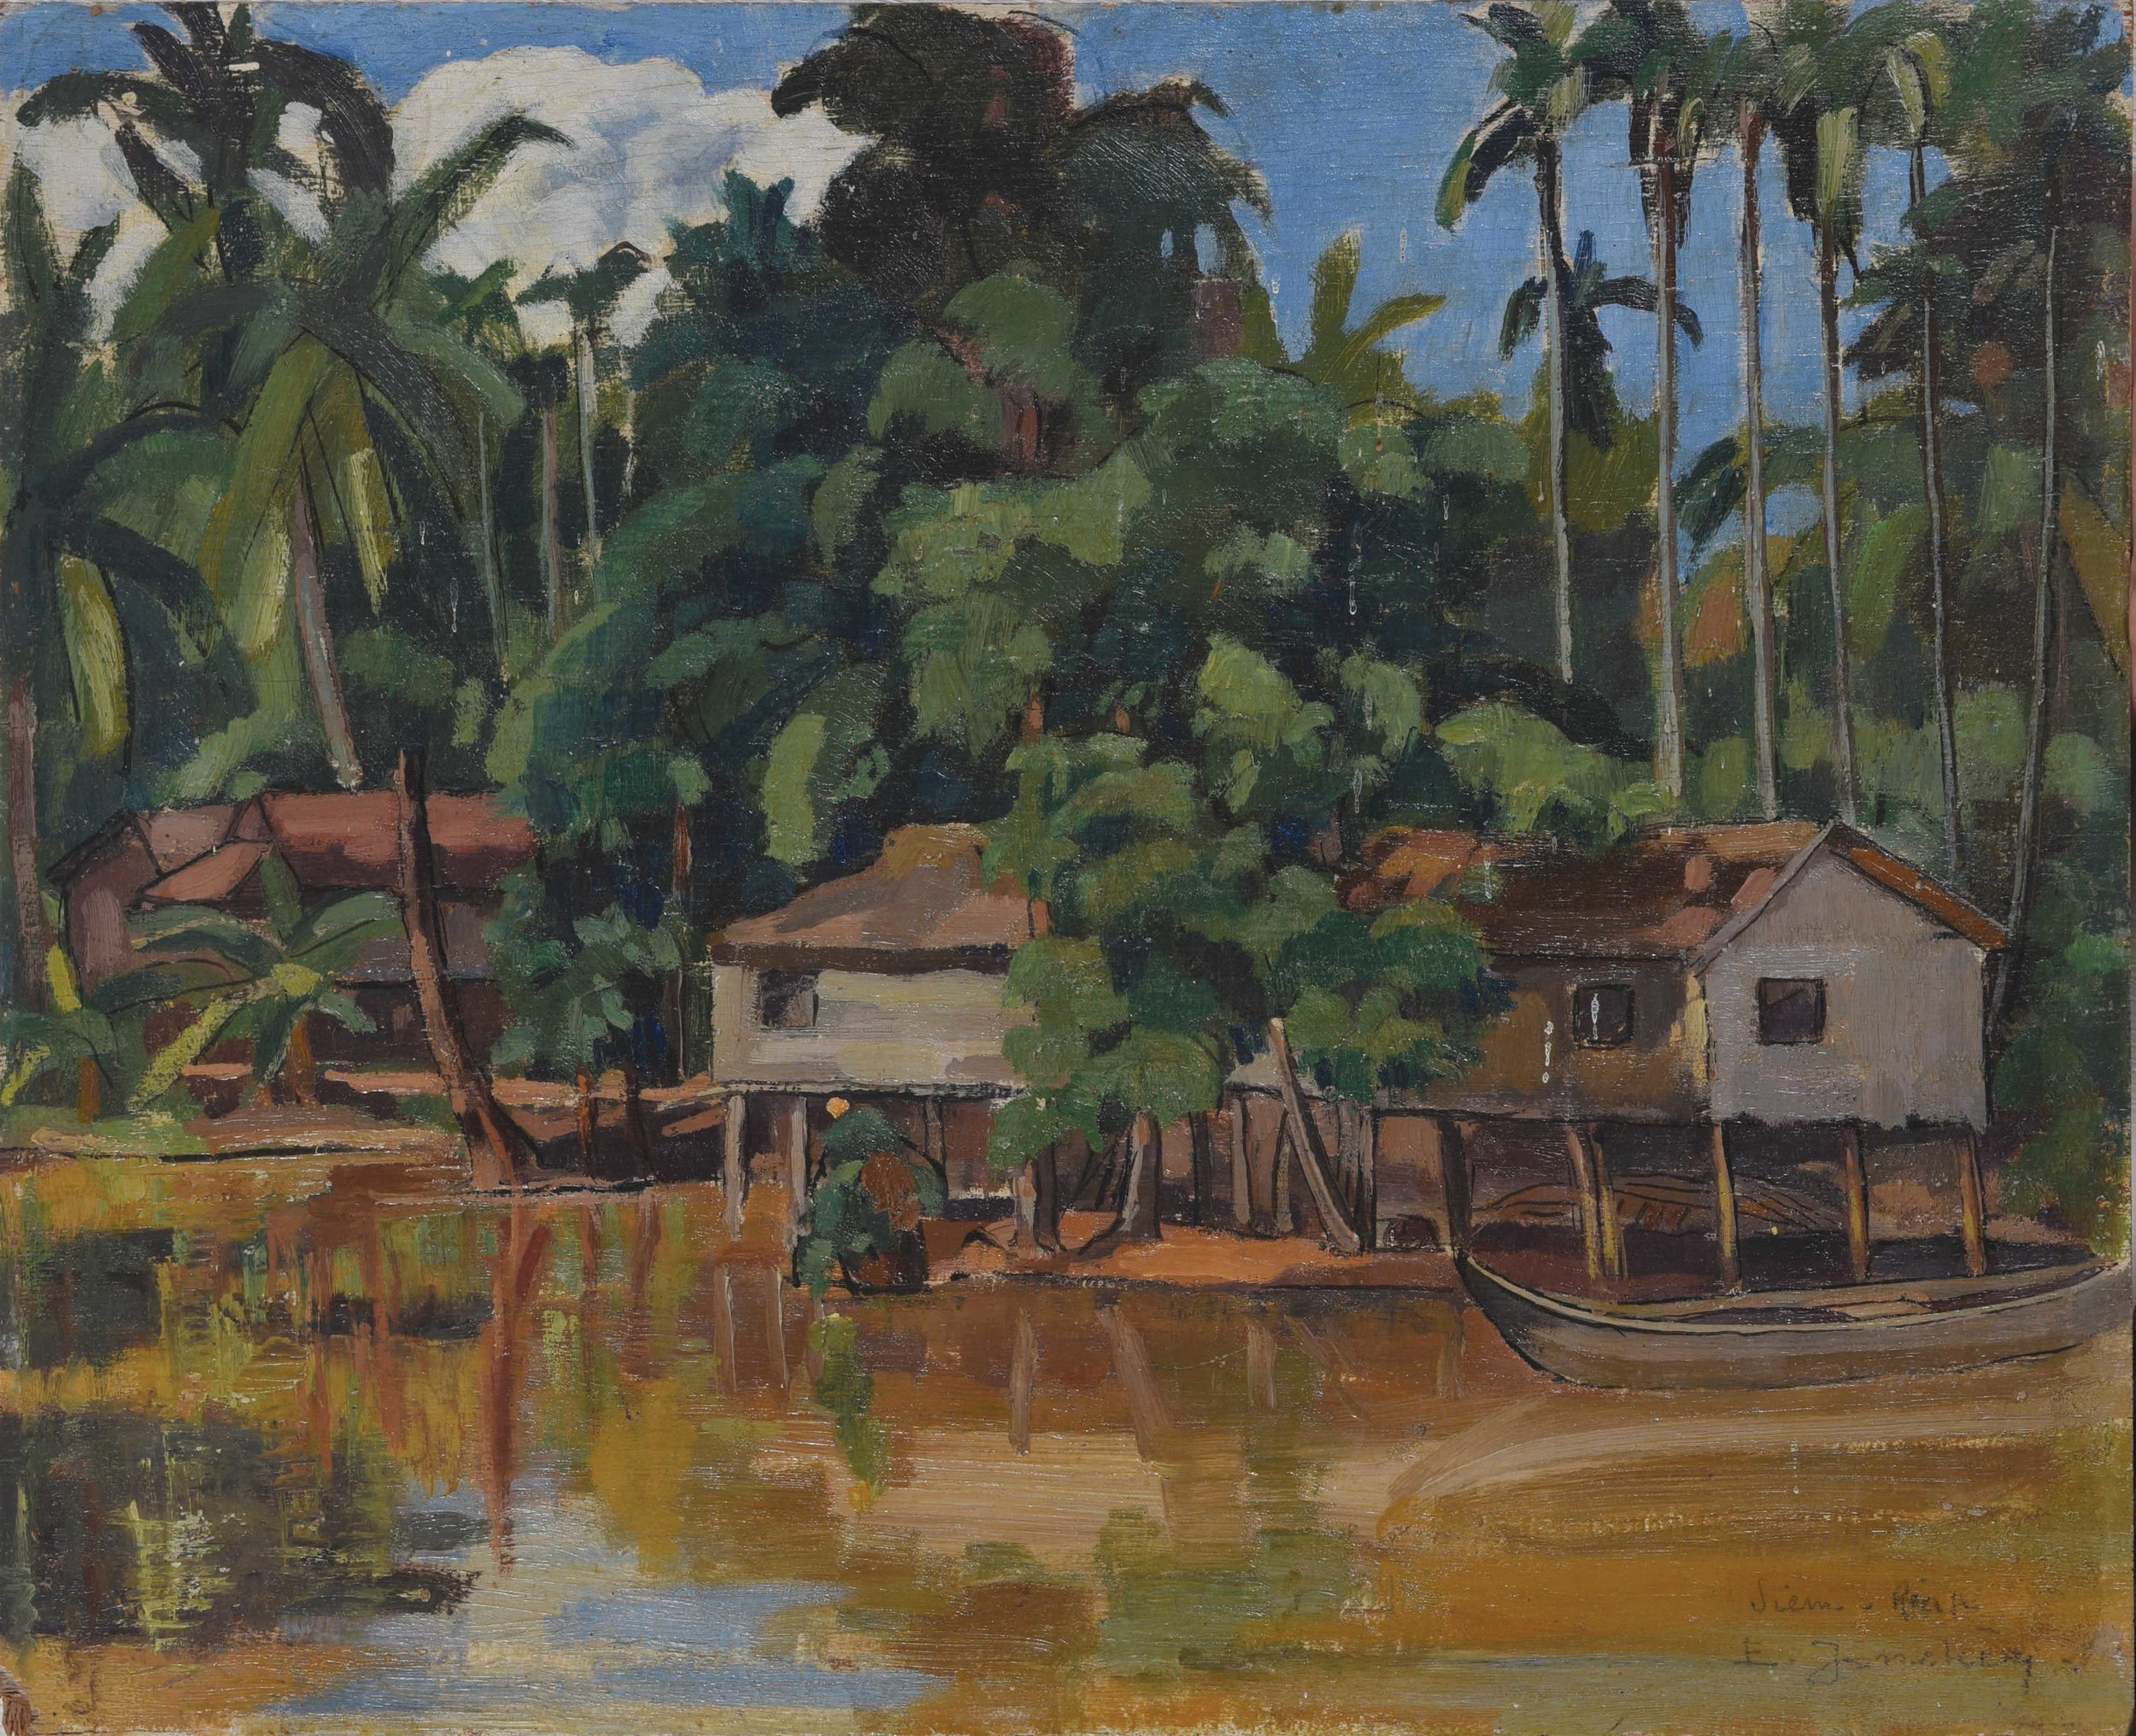 Évariste Jonchère, Siem Reap. Village au bord de la rivière (Siem Reap. Village by the river), 1932